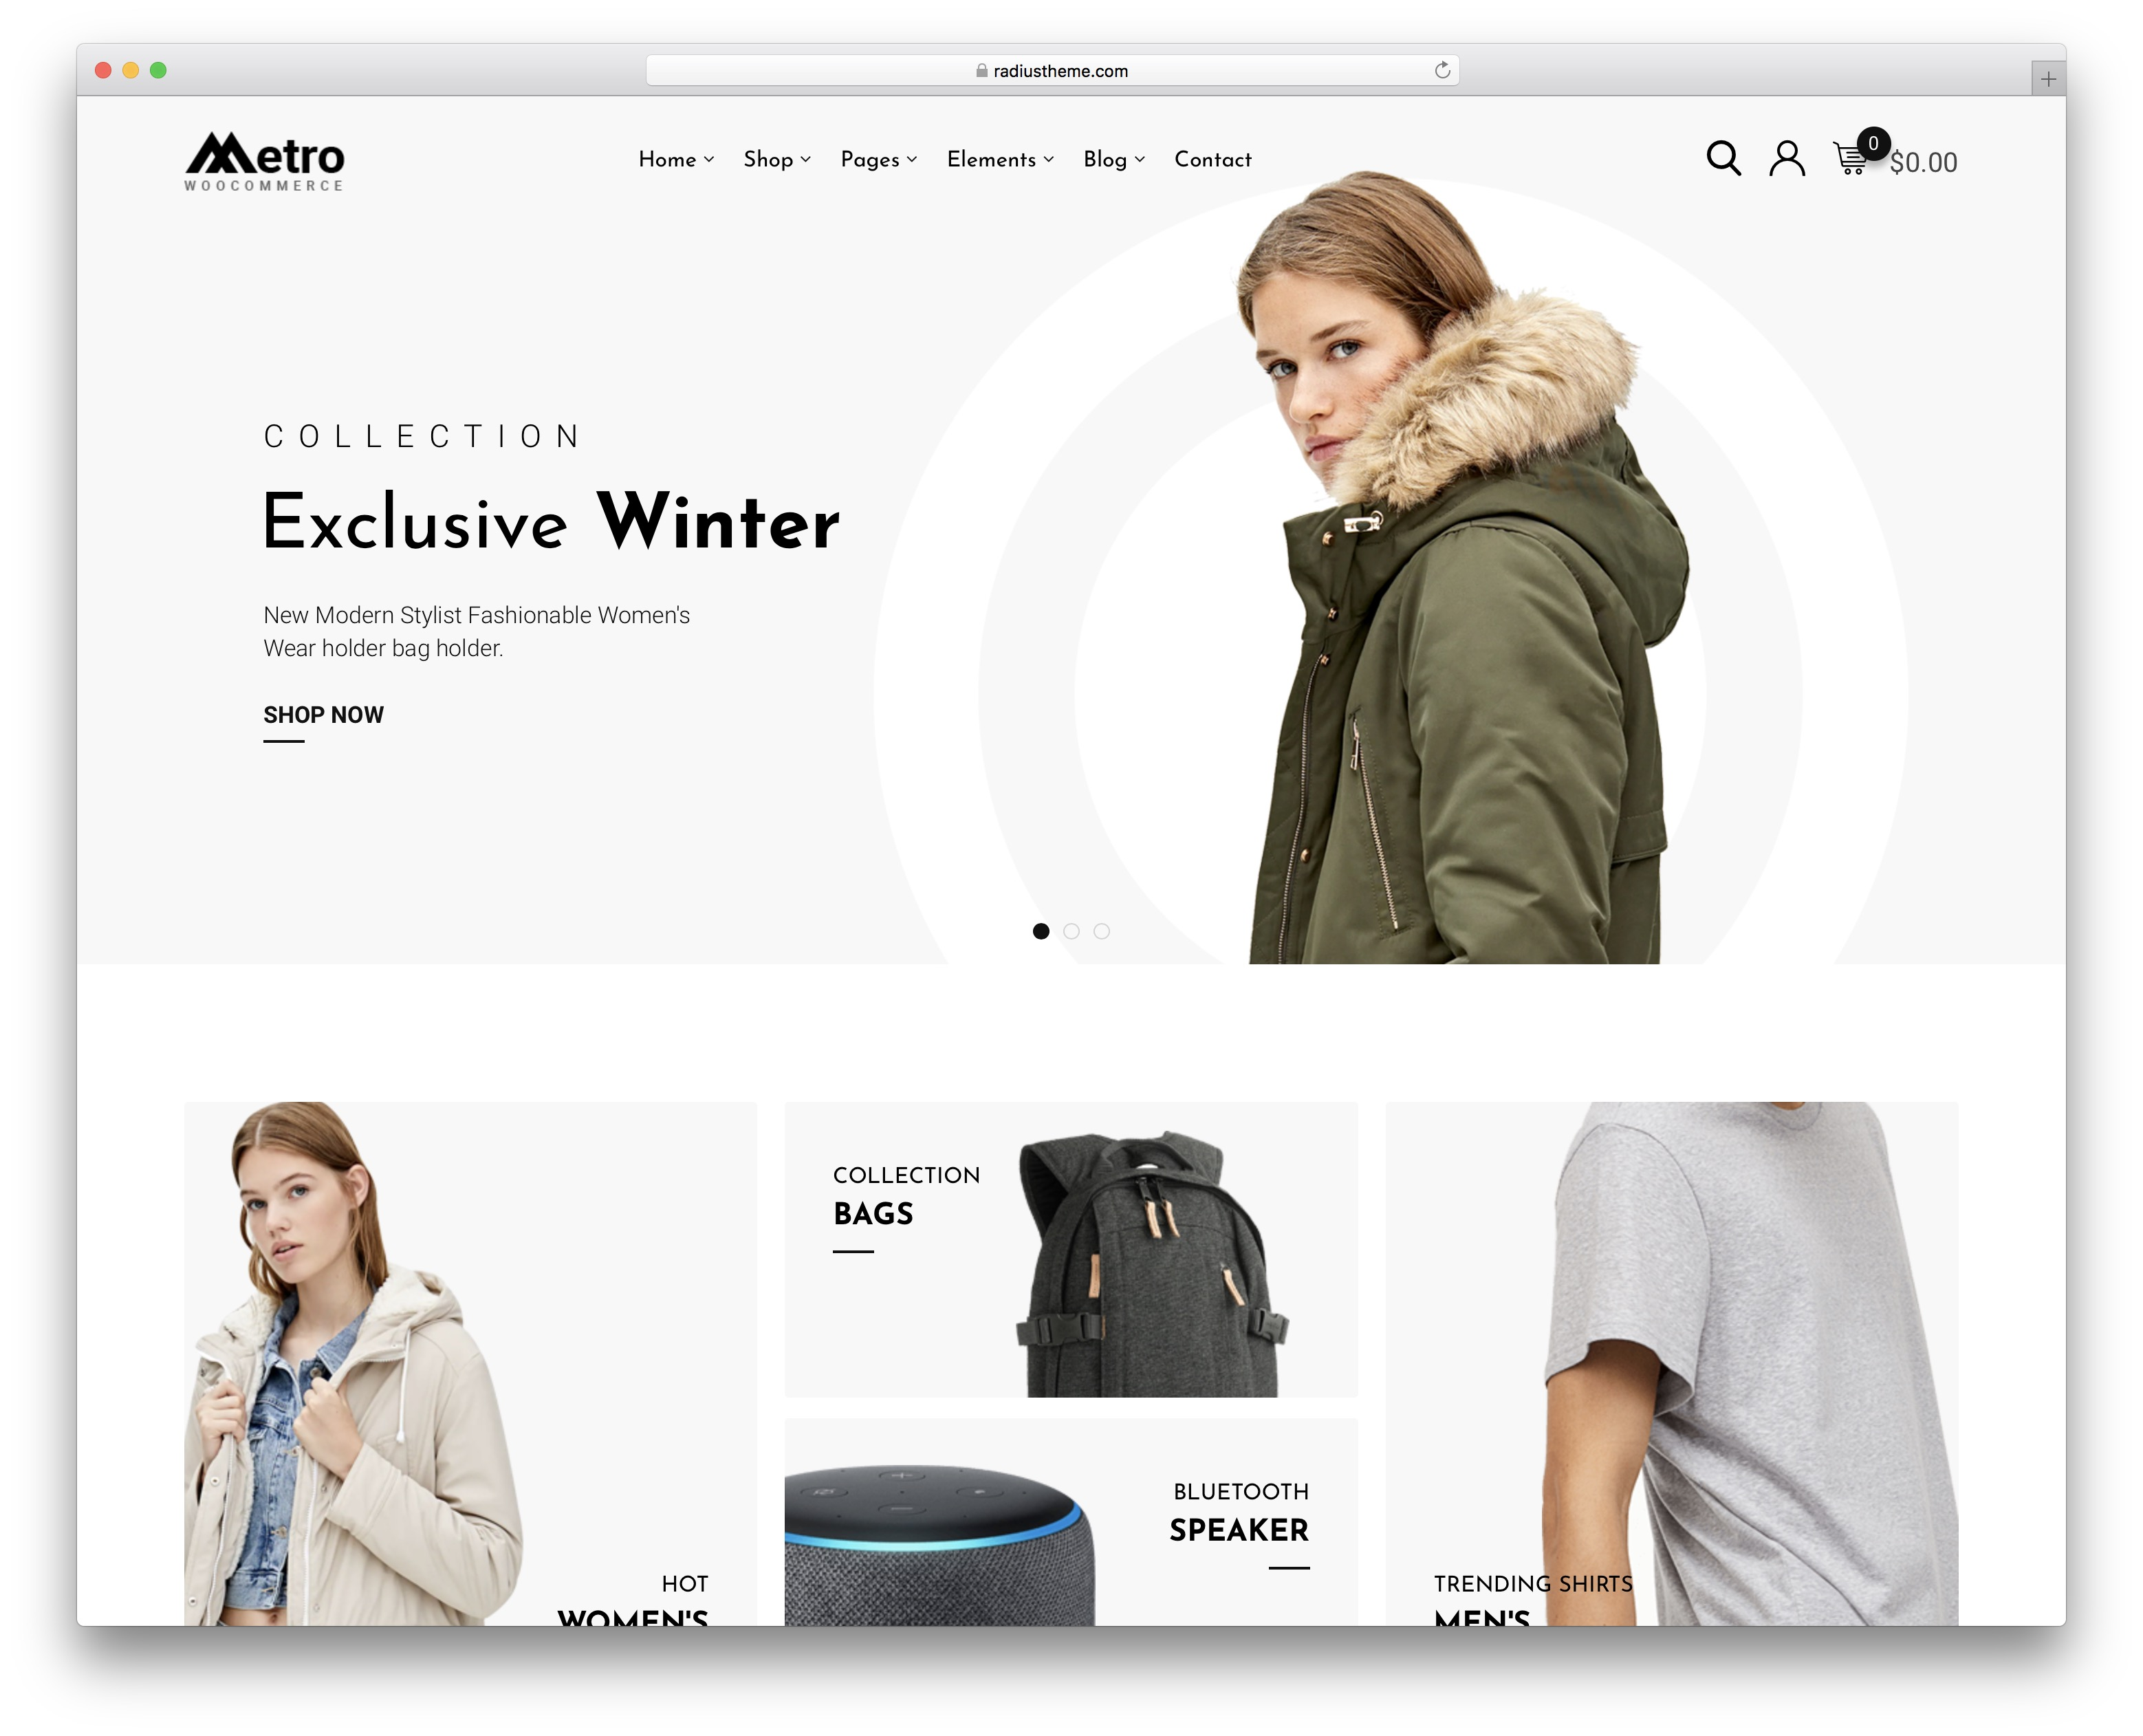 metro minimalist wordpress theme